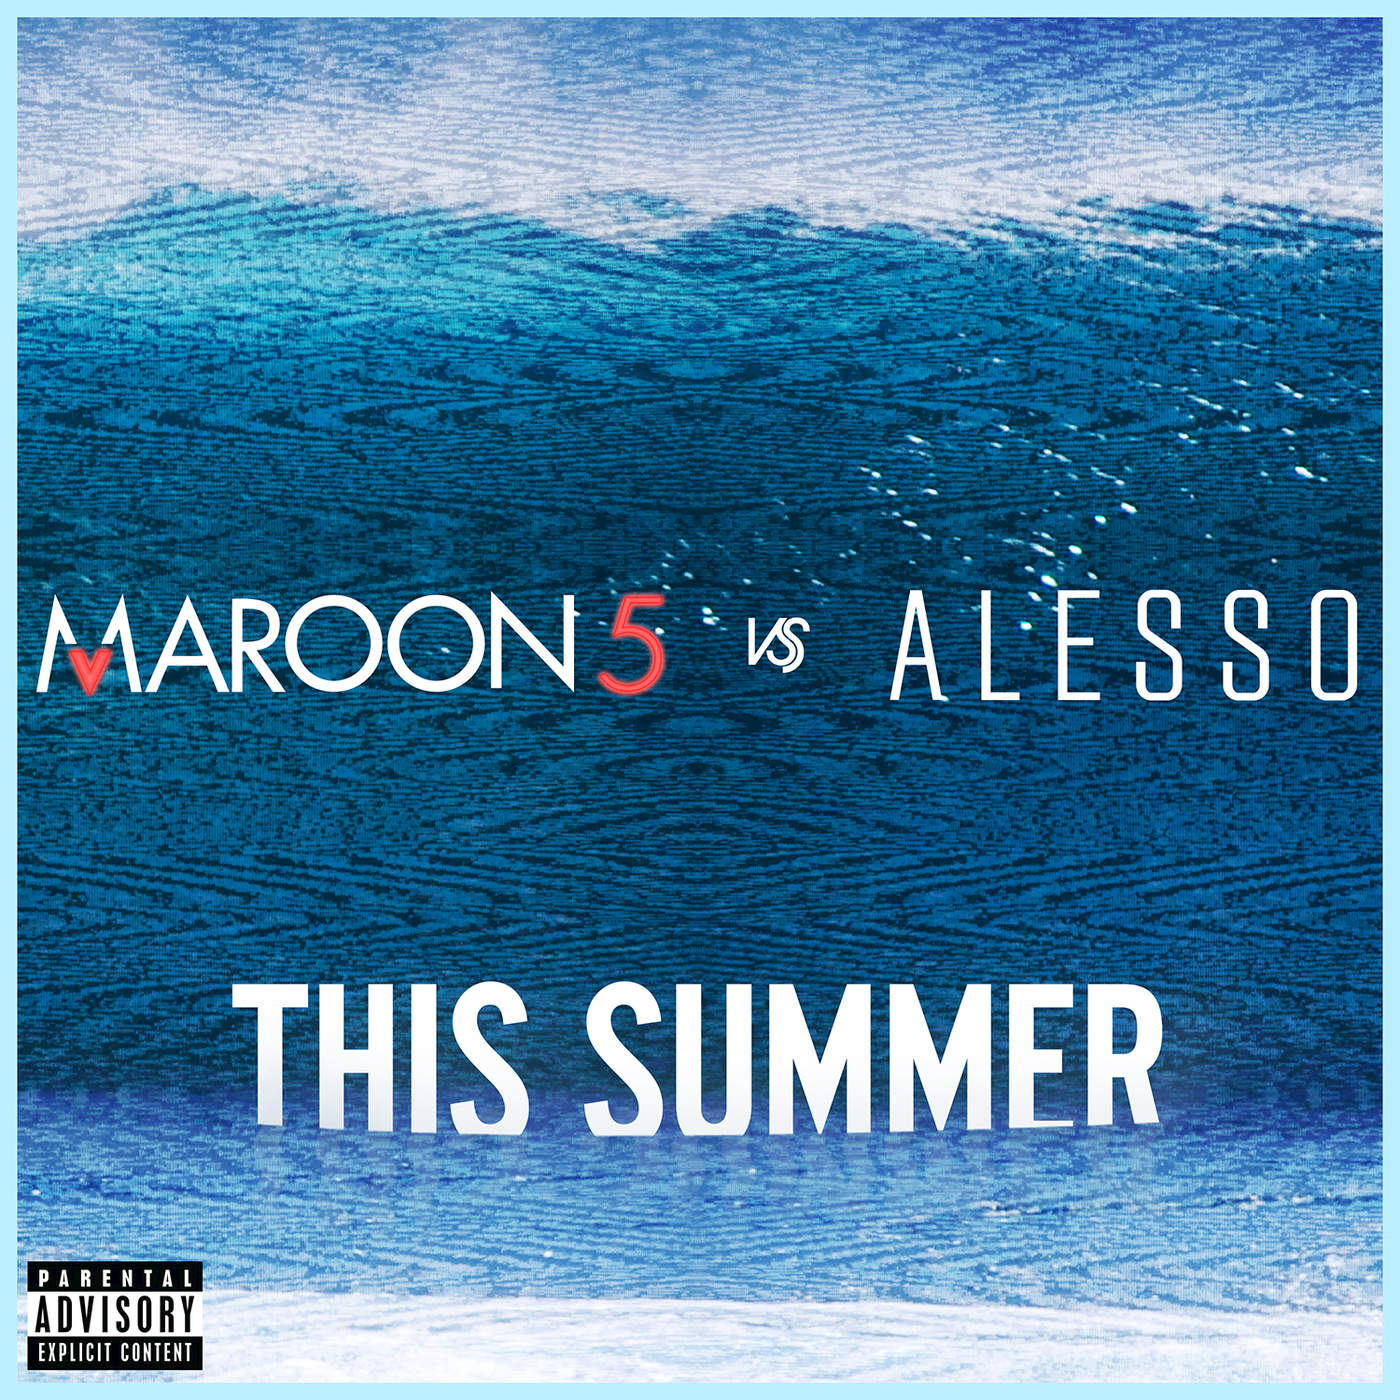 Maroon 5 & Alesso - This Summer (Maroon 5 vs. Alesso) - Single Cover